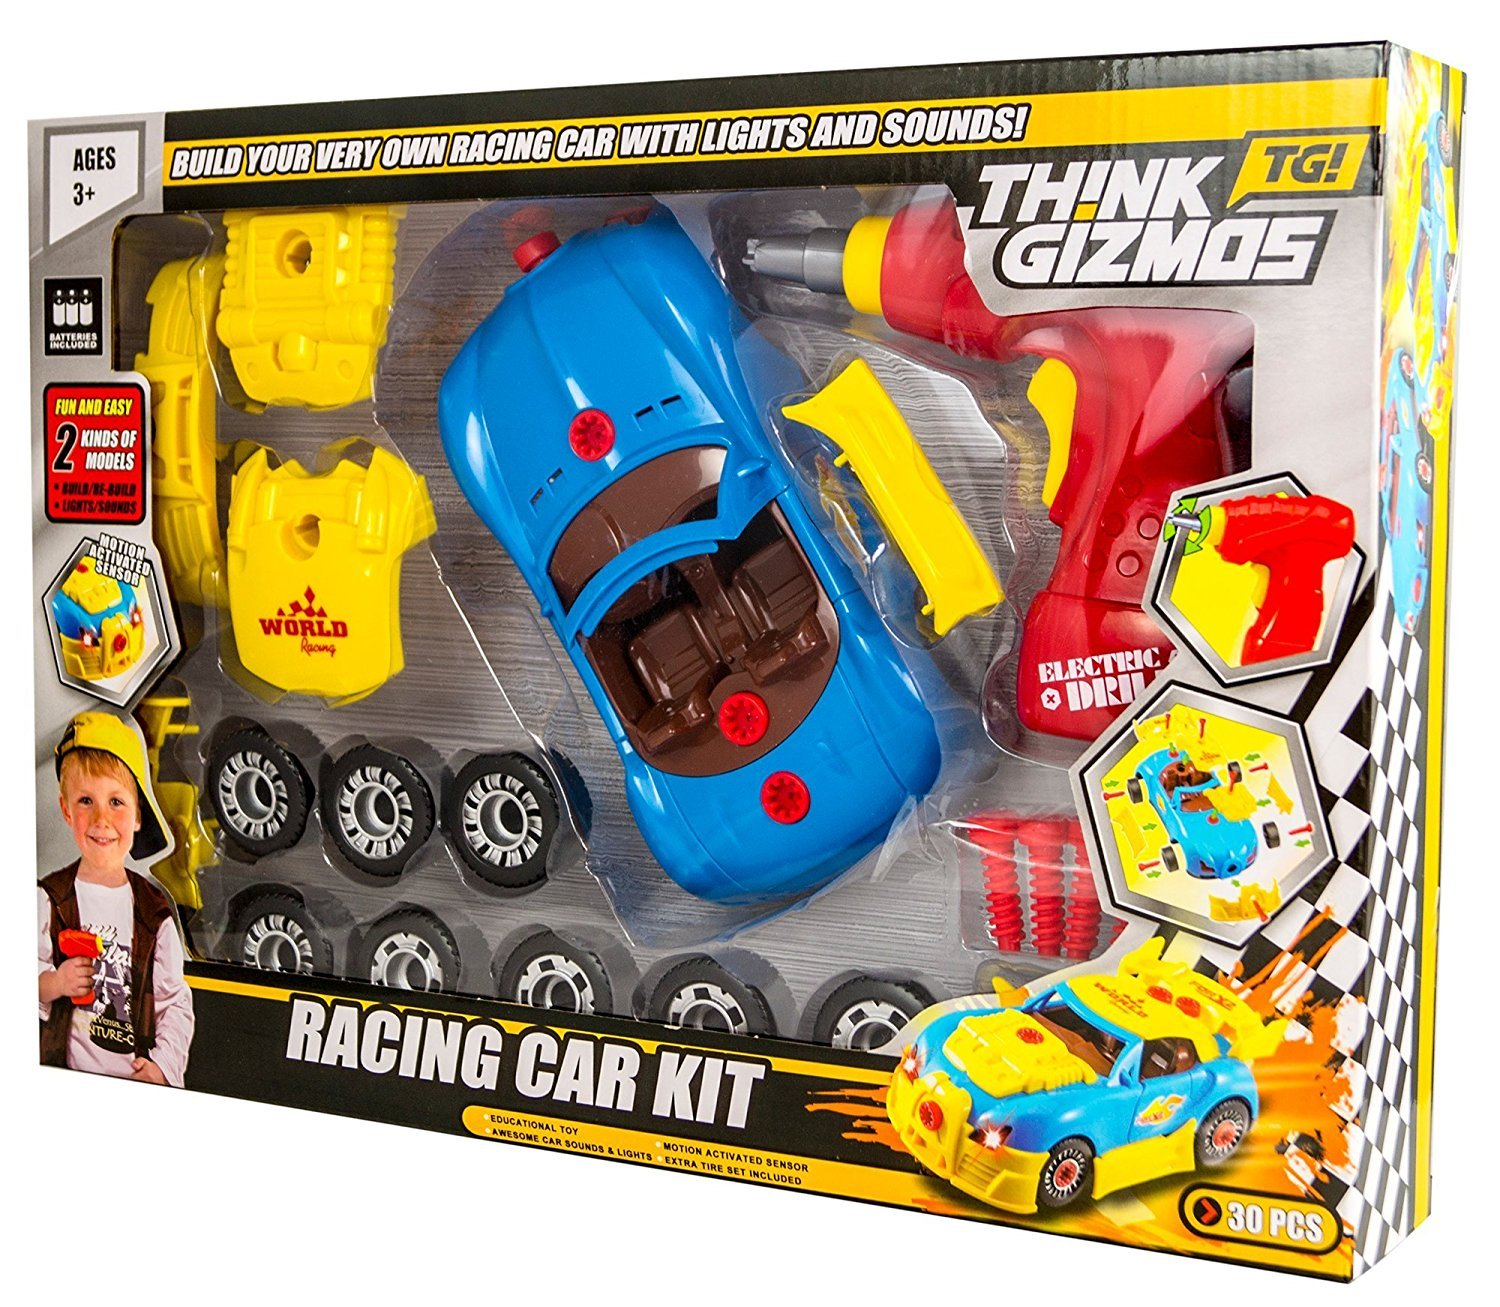 Take Apart Toy Racing Car Kit For Kids TG642 (Version2